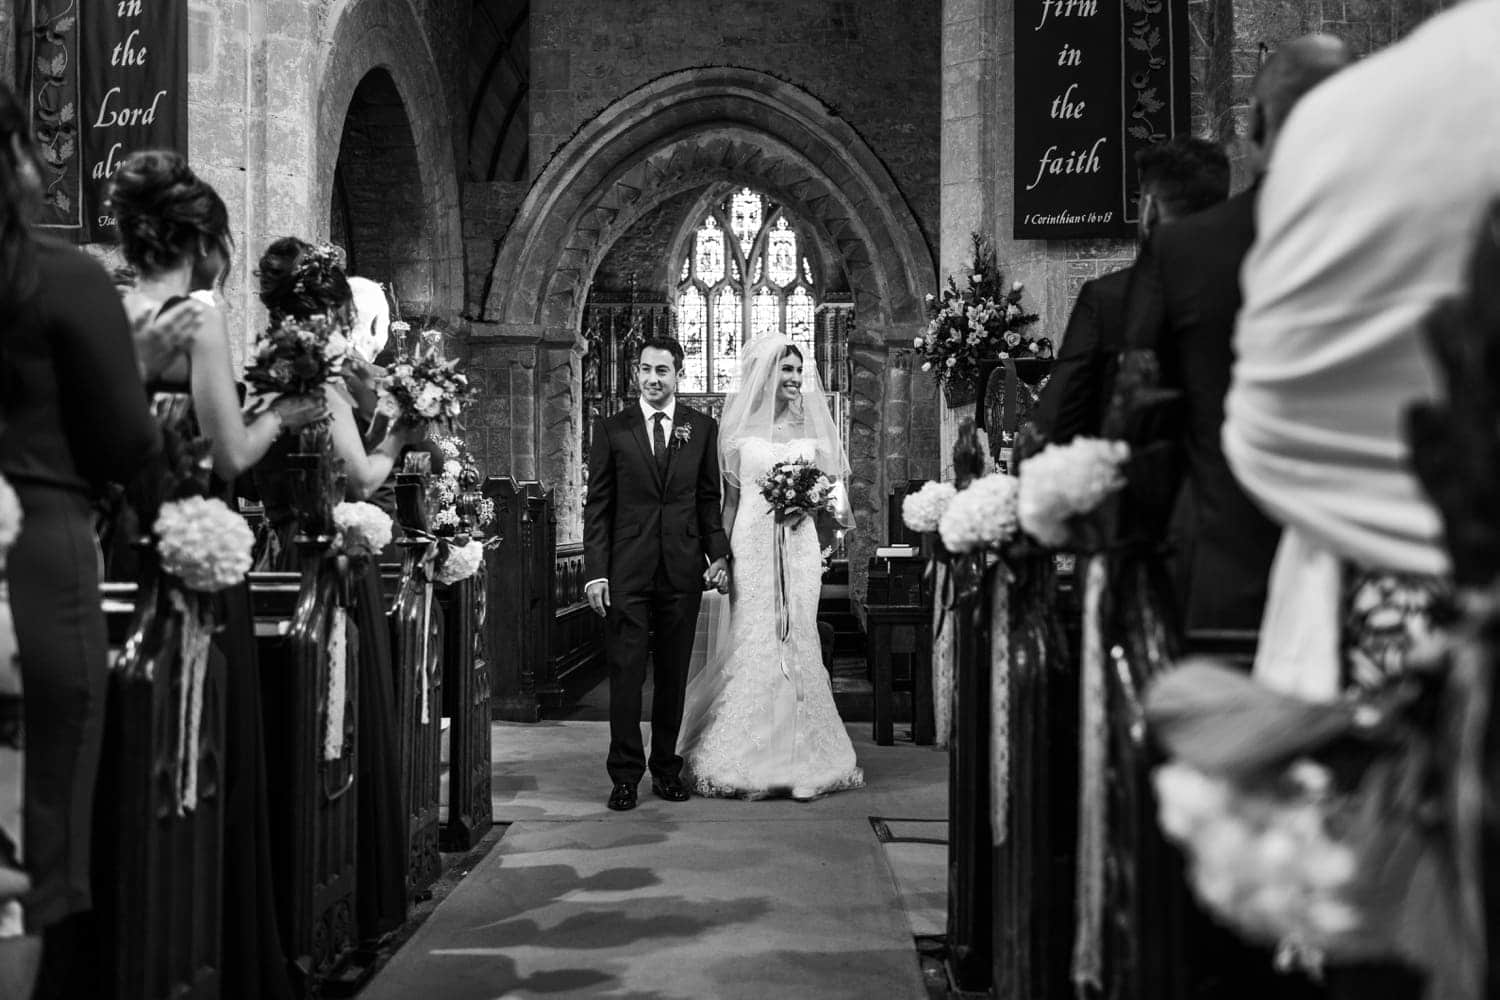 Bride and groom walking down the aisle at St Andrews Church in Clevedon, Somerset